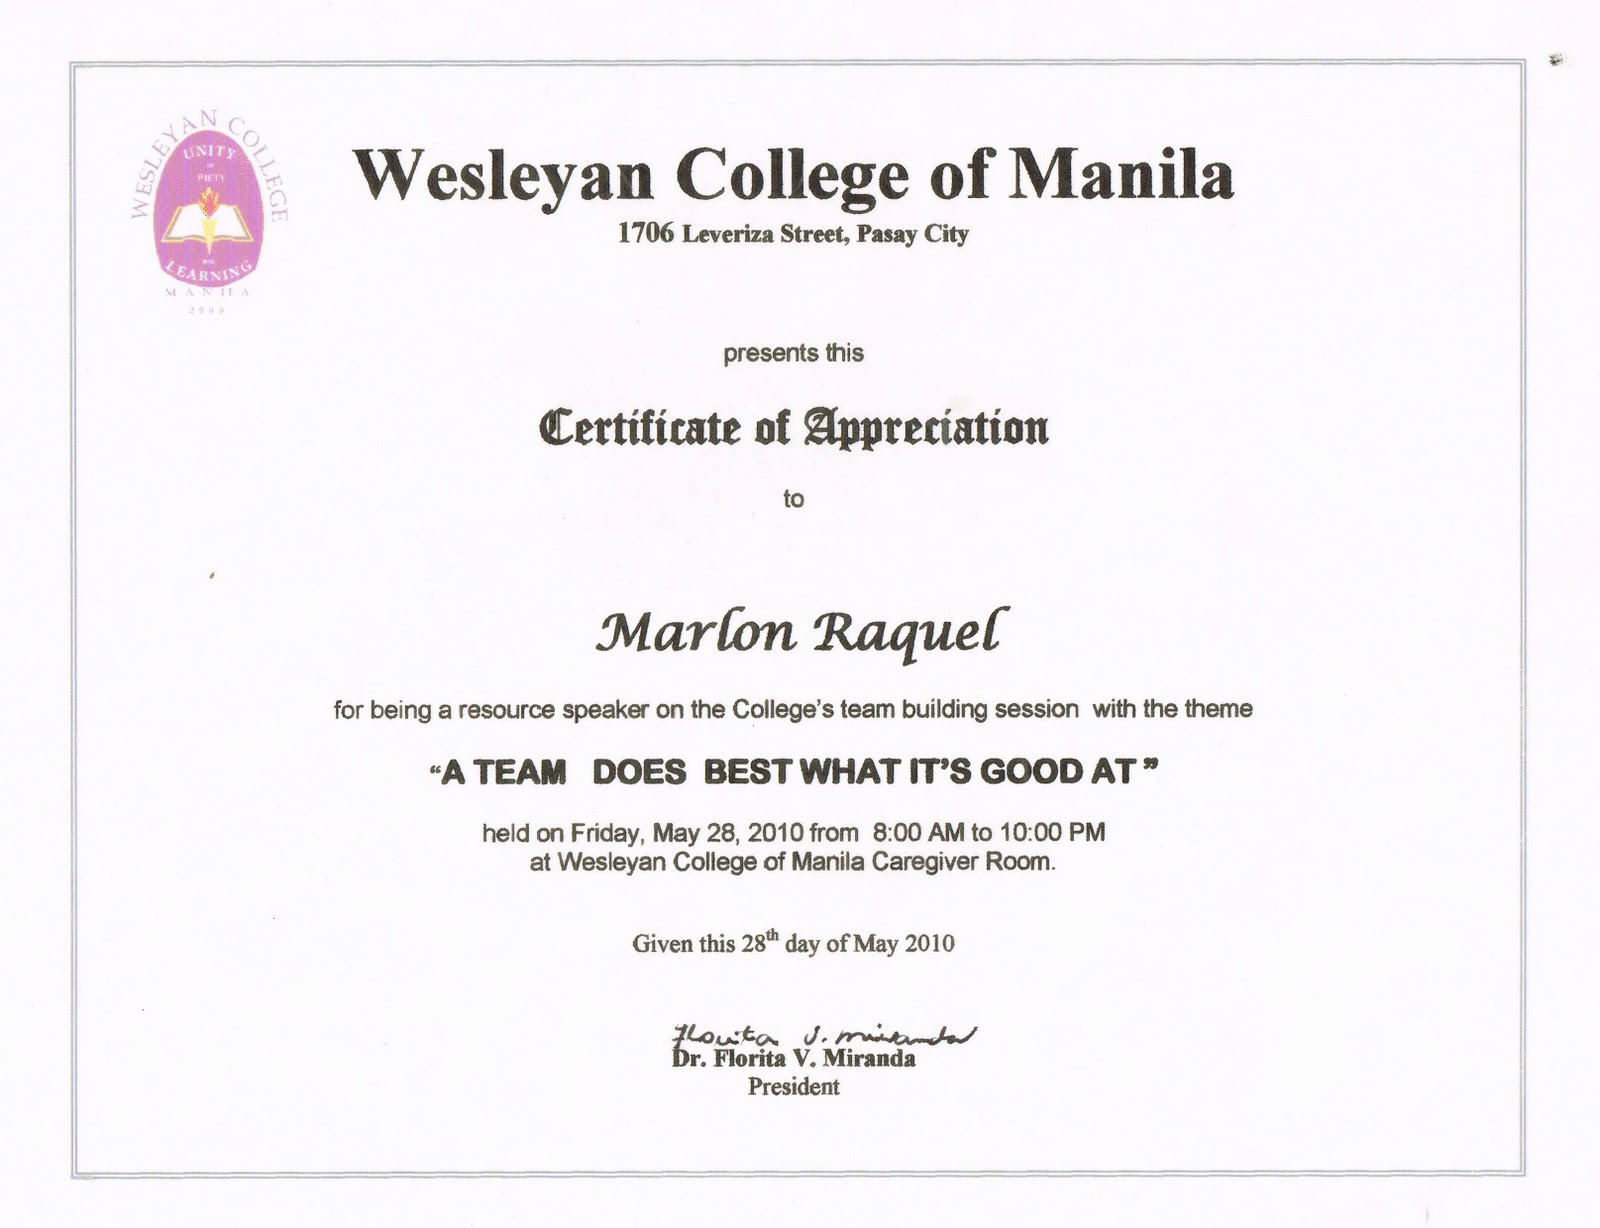 The fisher valley college certificate of appreciation 2 from certificate of appreciation 2 from wesyelan college of manila 1betcityfo Choice Image